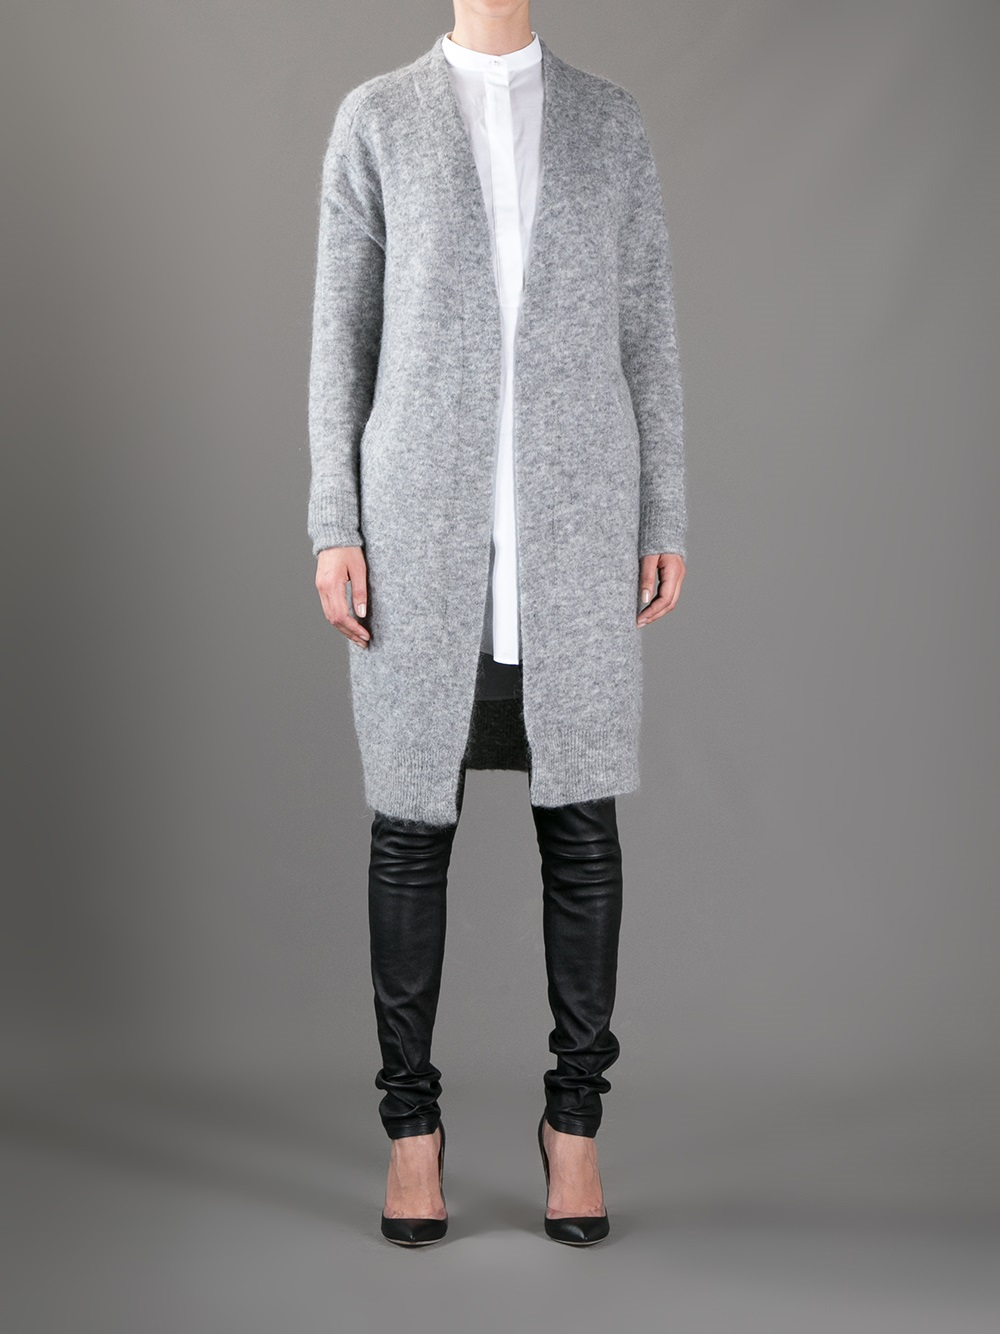 Acne studios Raya Long Cardigan in Gray | Lyst